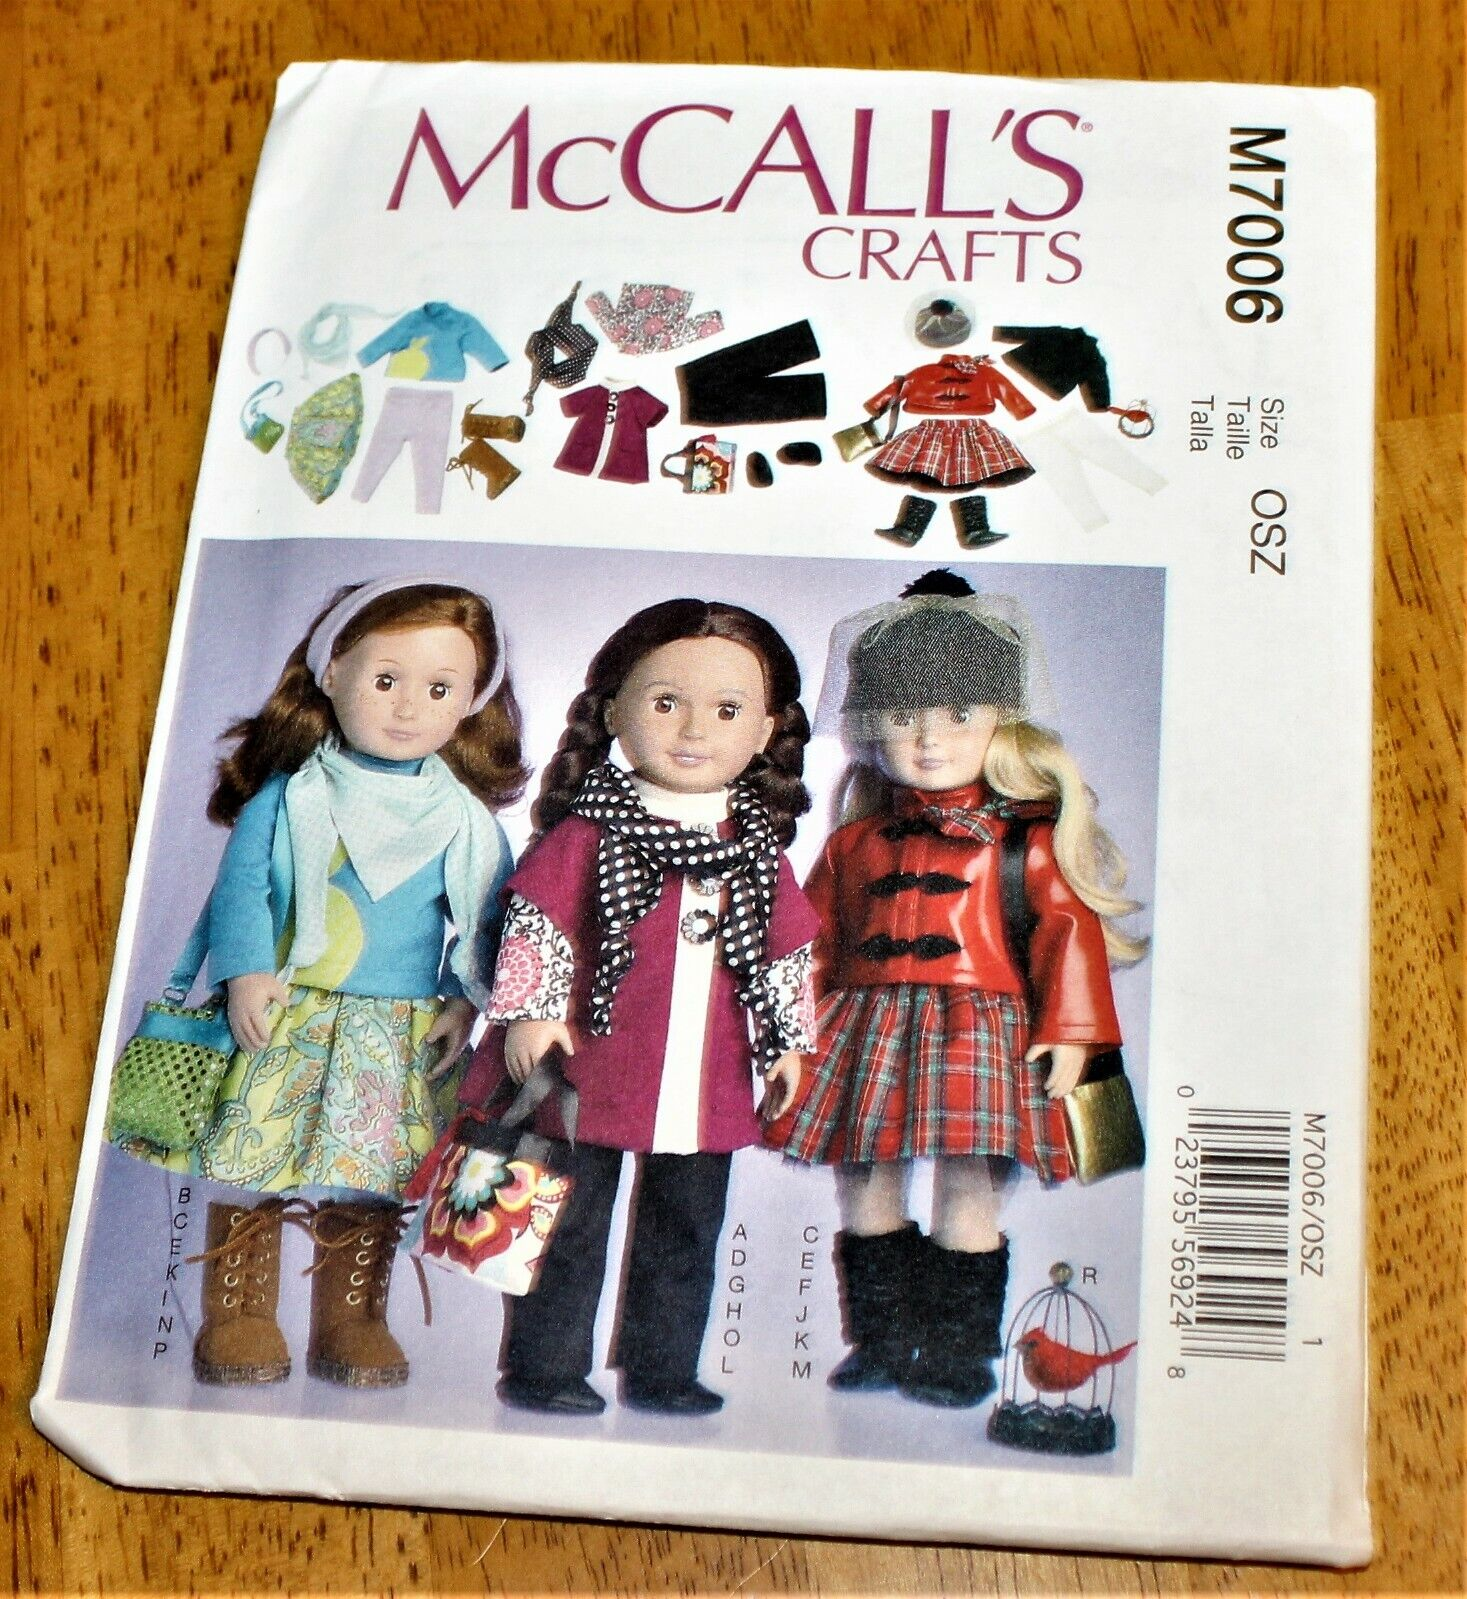 McCALL S PATTERN 7006 DOLL CLOTHES FOR 18 INCH DOLLS - 3 OUTFITS - UNCUT - $4.59